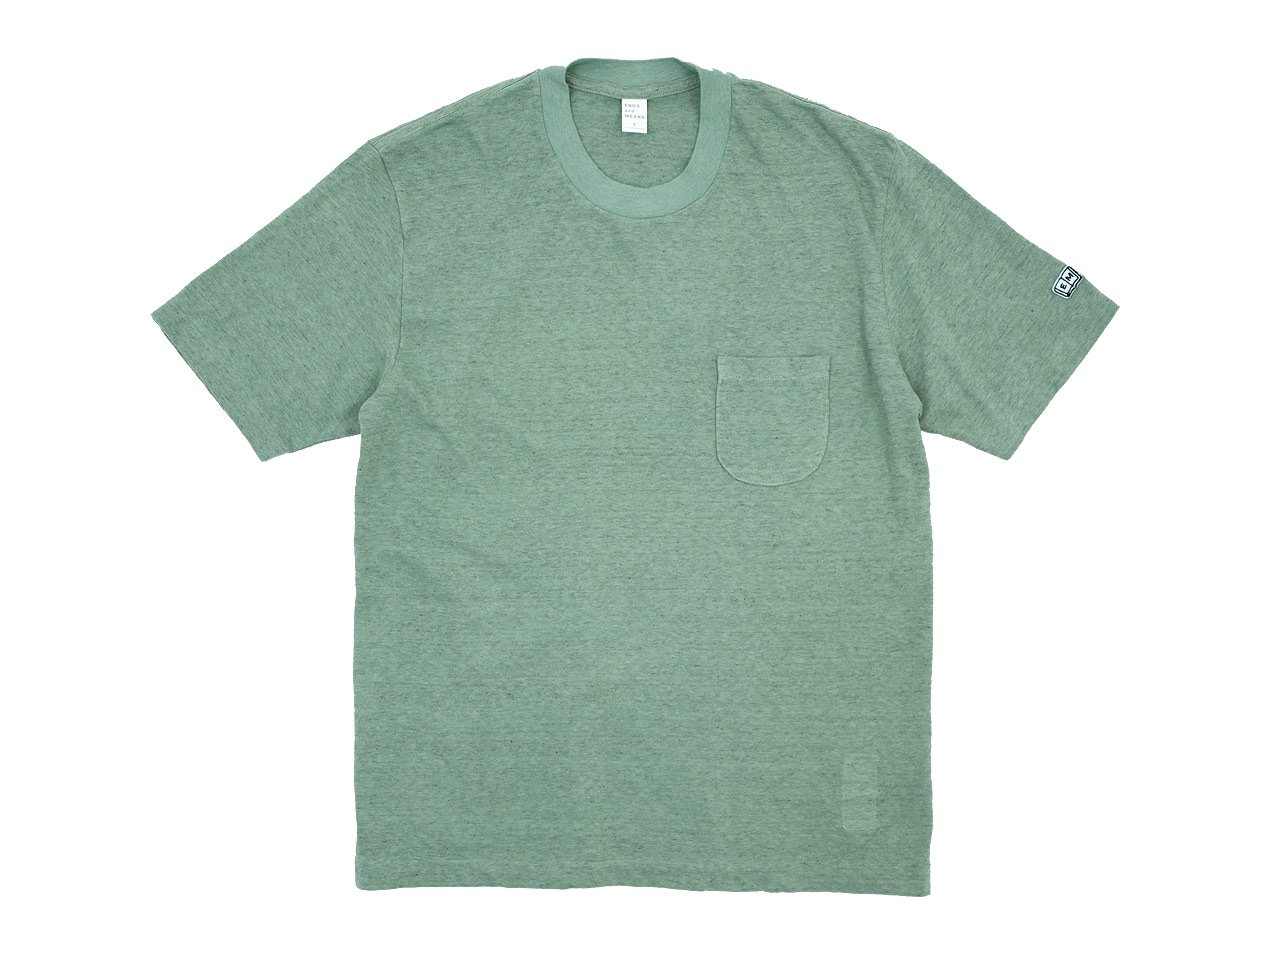 ENDS and MEANS Pocket Tee LIGHT GREEN